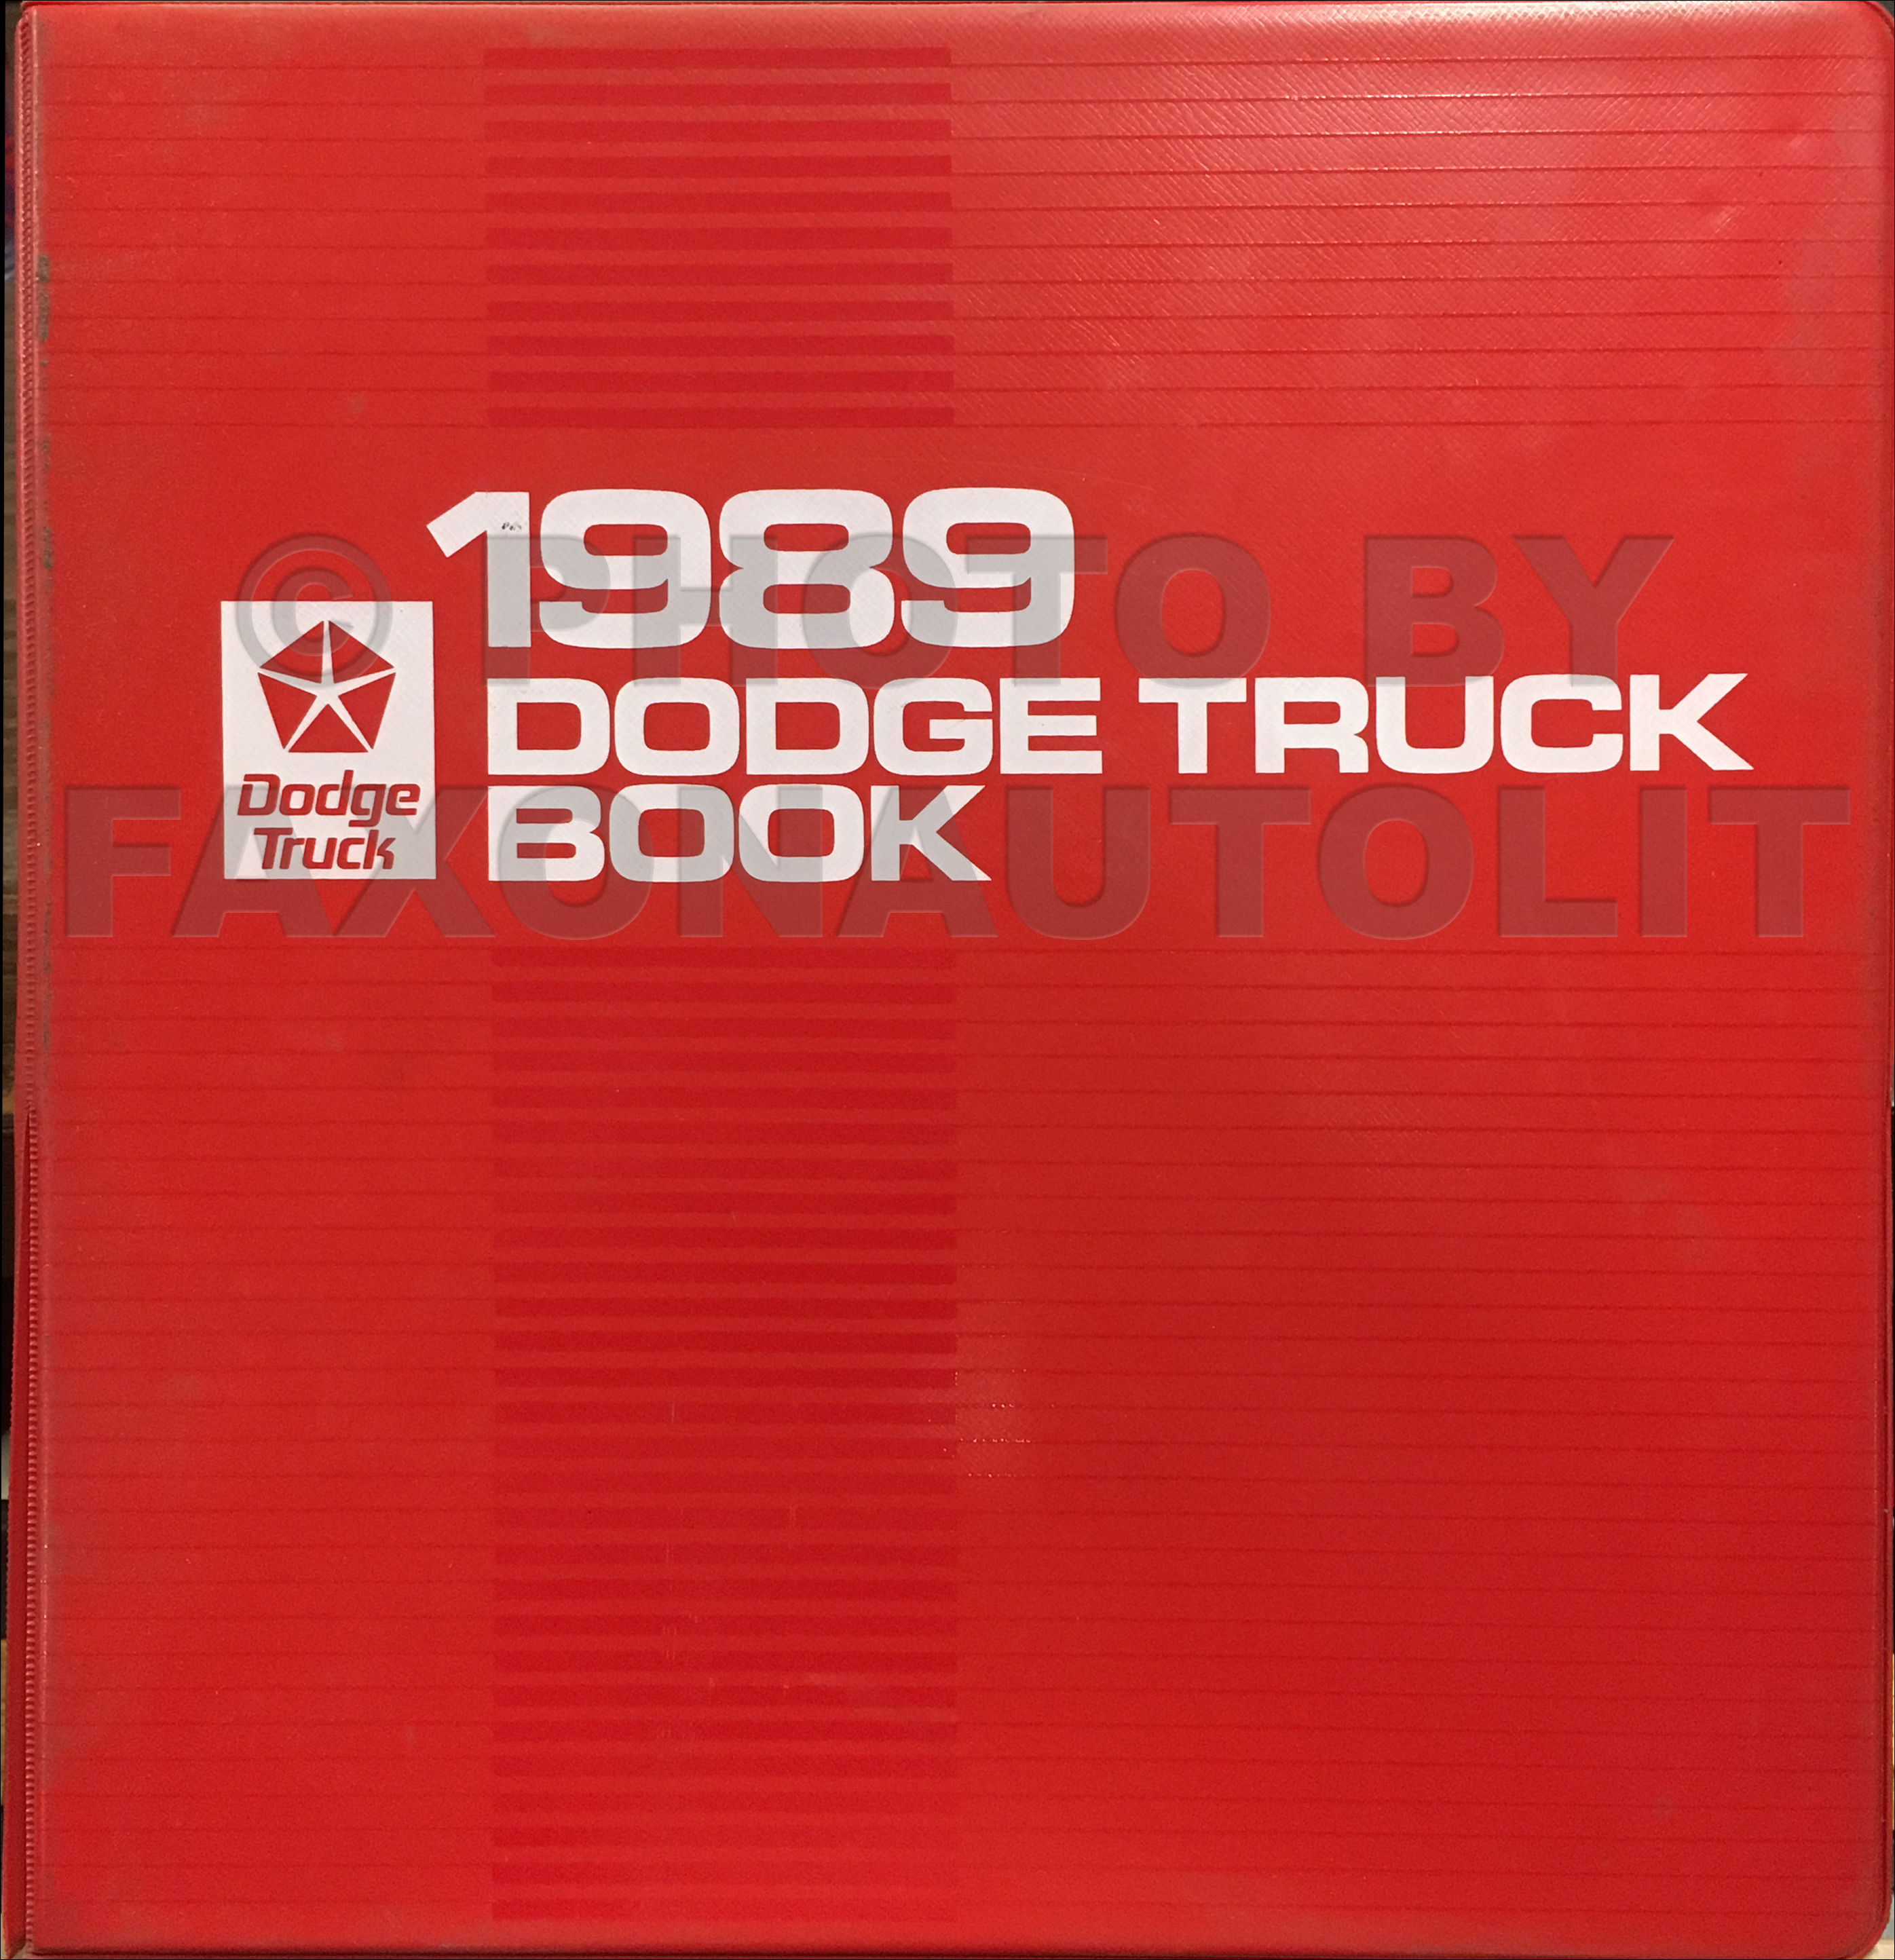 dodge ram van wagon repair shop manual original b b 1989 dodge truck color upholstery album and data book original 149 00